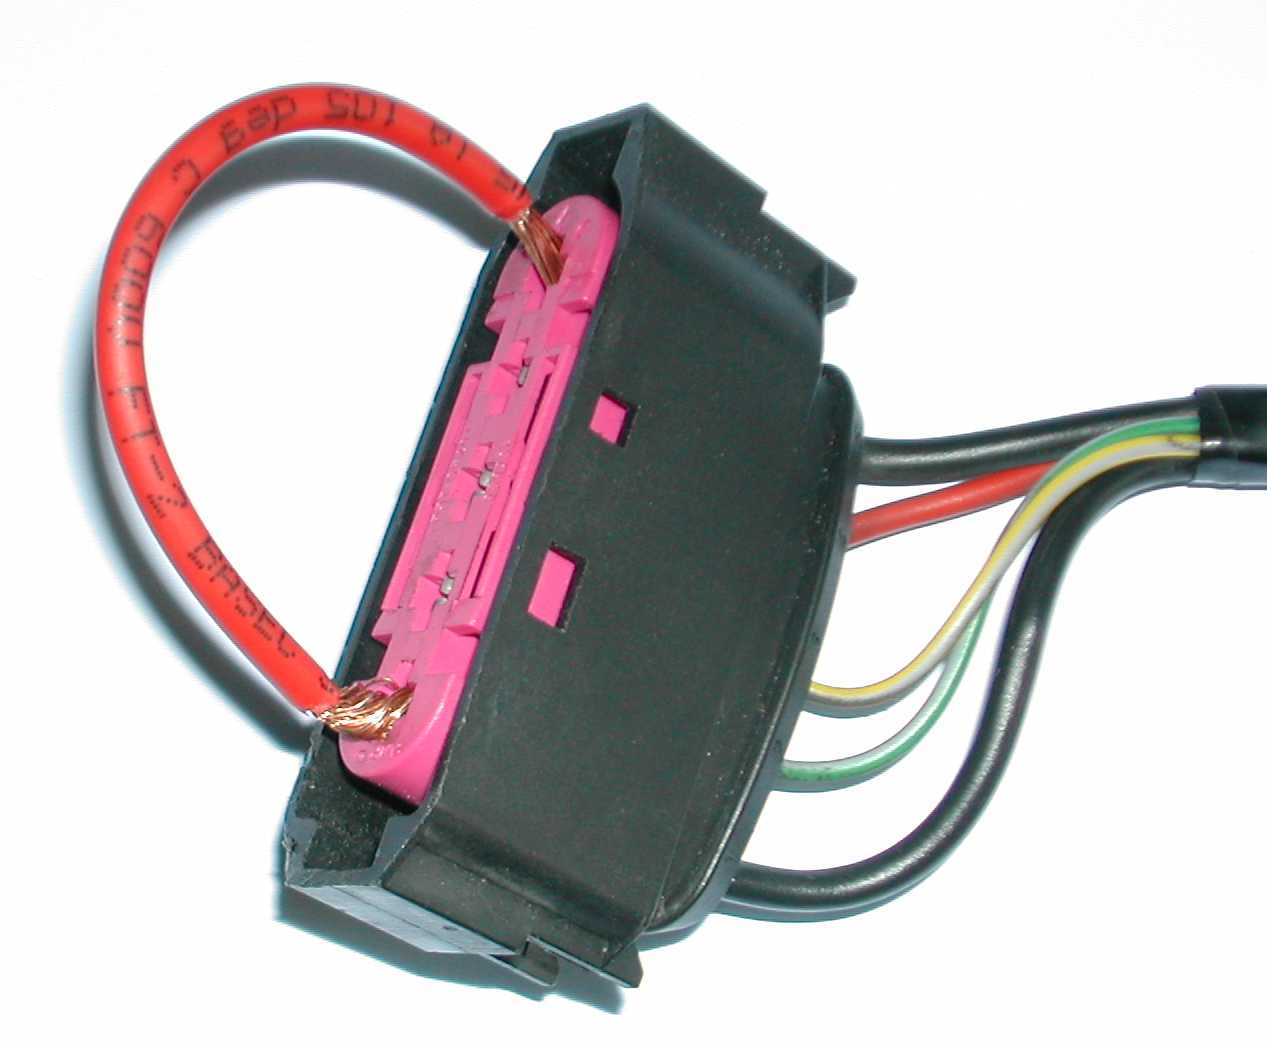 2003 Renault Megane Fuse Box Diagram Wiring Library Repair Clio Ii Heater Blower Problem Fixed In Minutes Rh Heaterblowerresistor Co Uk 2012